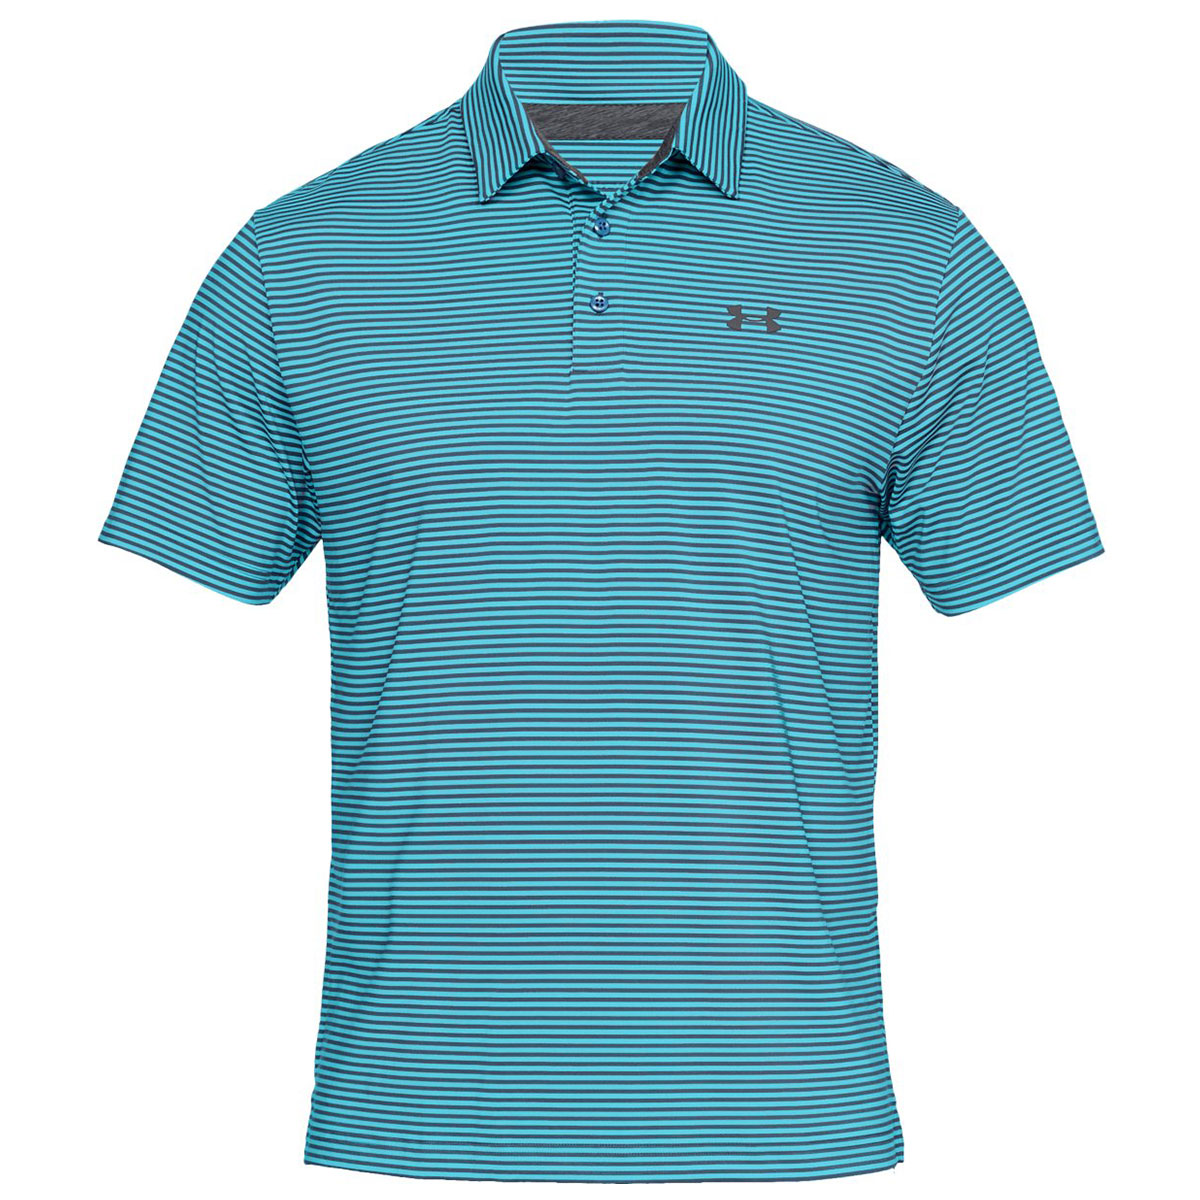 Under-Armour-Mens-UA-Playoff-Performance-Golf-Polo-Shirt-33-OFF-RRP thumbnail 112